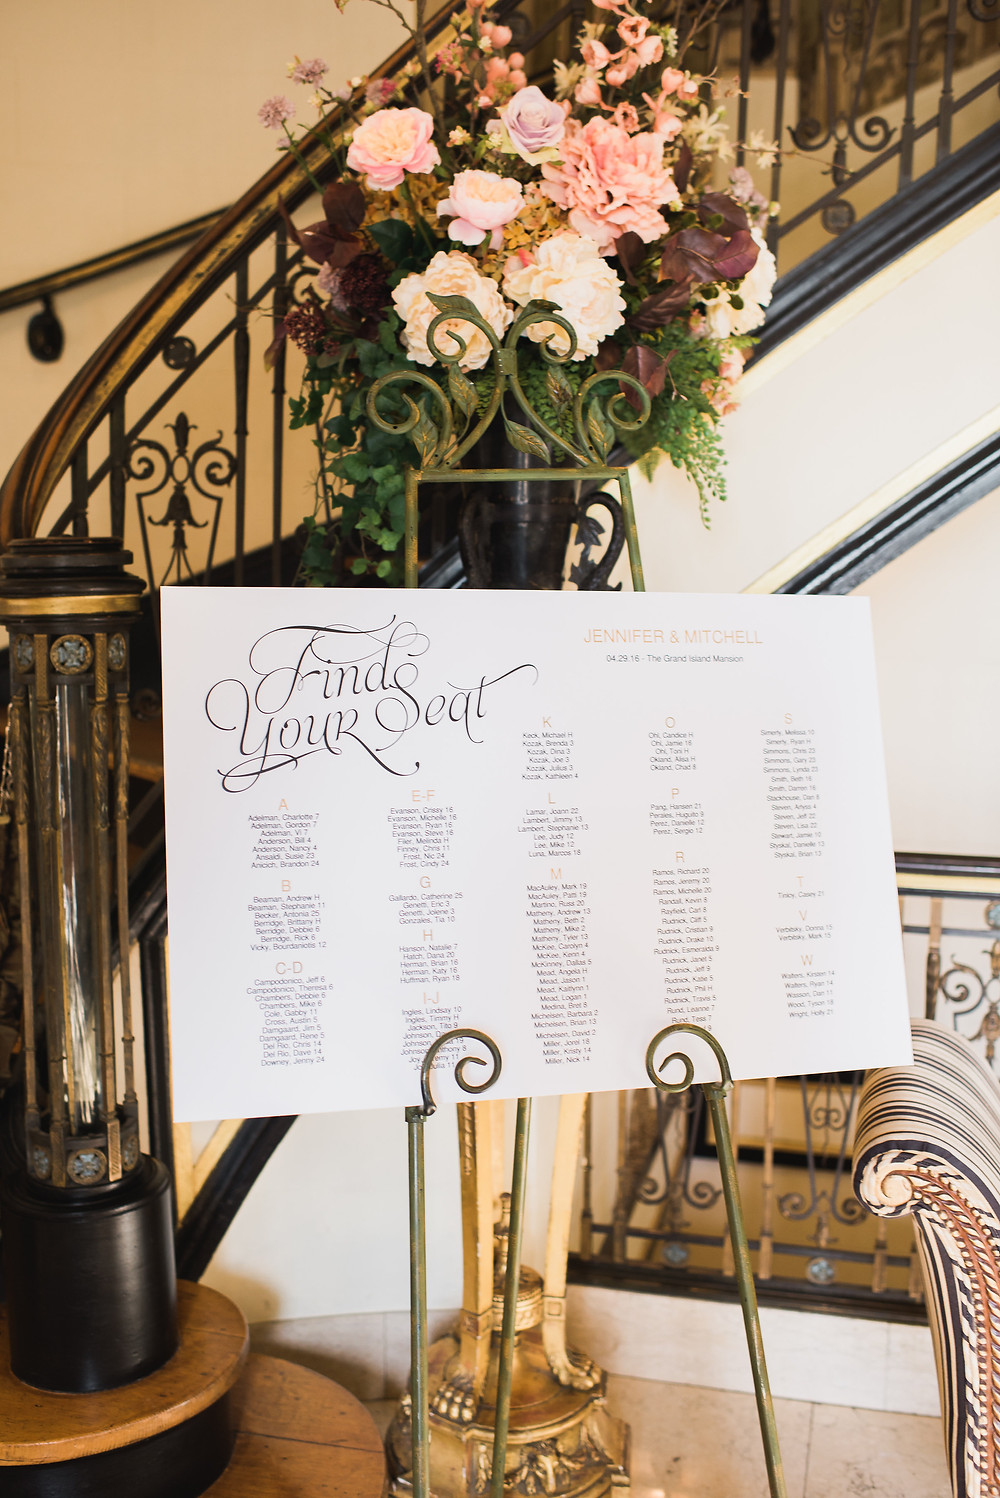 Seating Chart | Visual Impact Design wedding flowers | Custock Photography